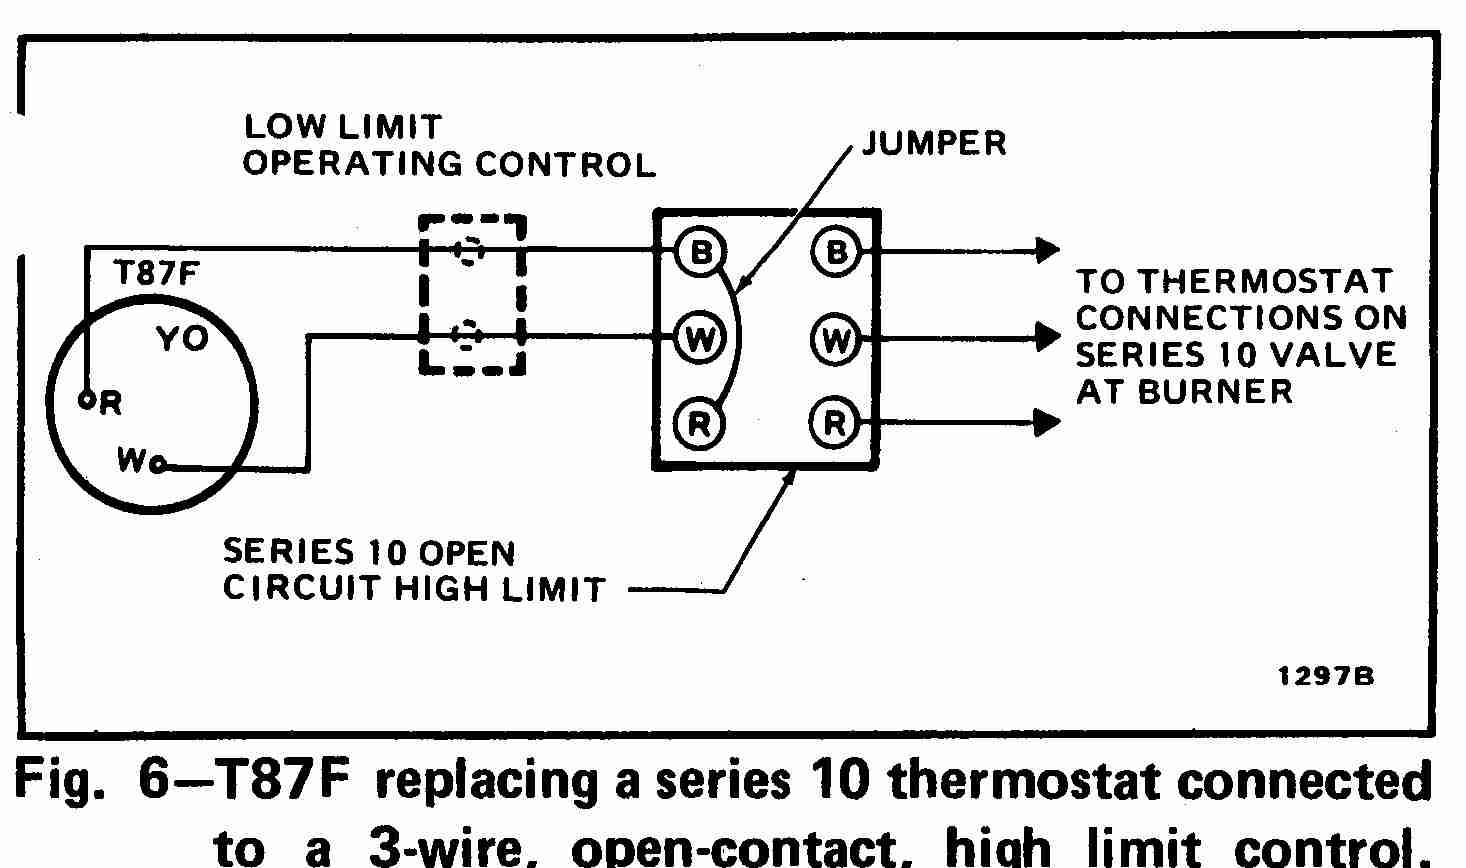 Room Thermostat Wiring Diagrams For Hvac Systems - Hvac Thermostat Wiring Diagram